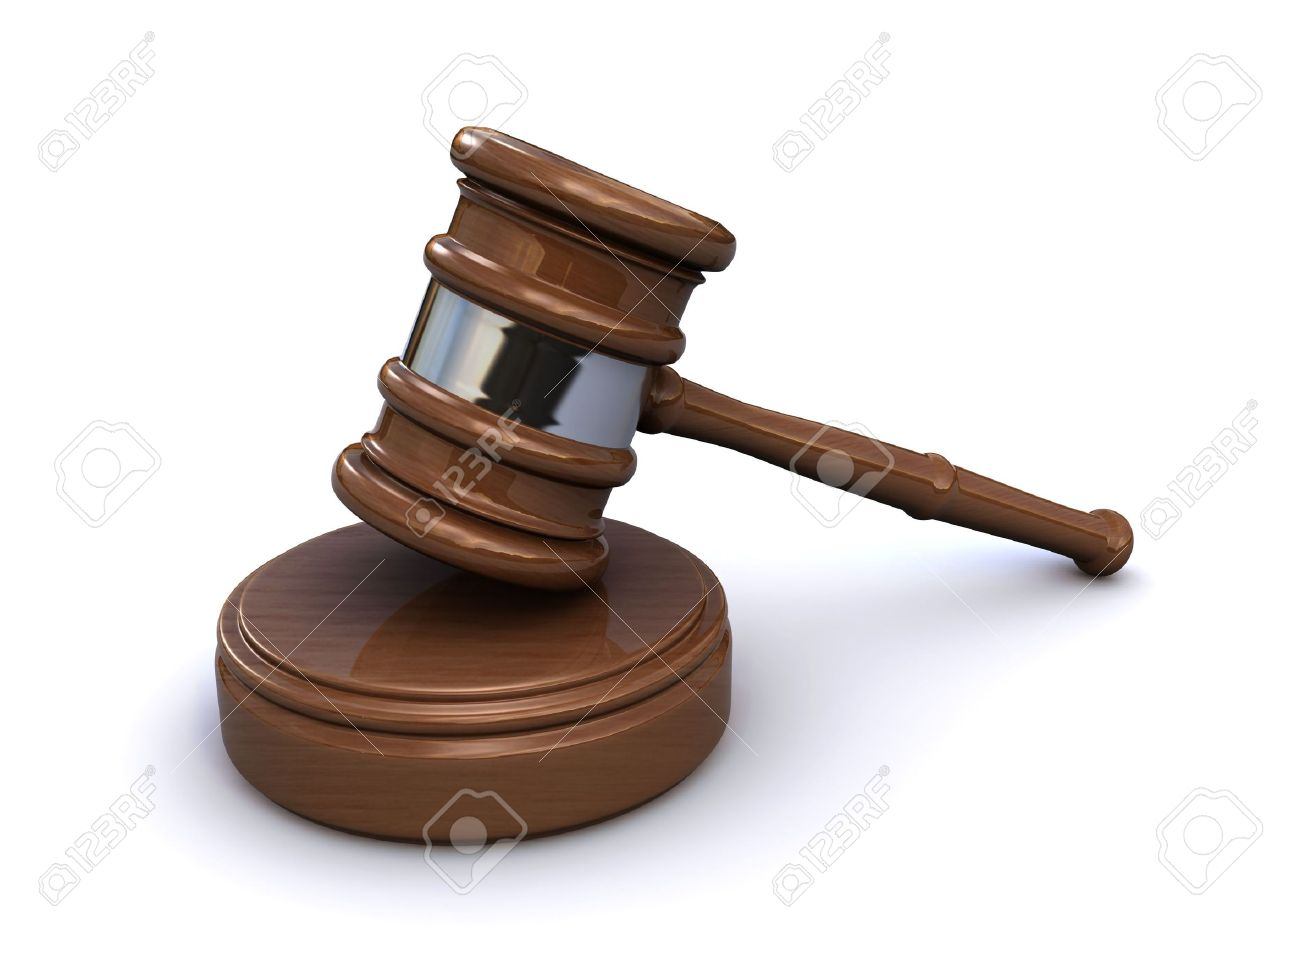 Stock photos mallet of judge image 10990093 - Stock Photos Mallet Of Judge Image 10990093 2